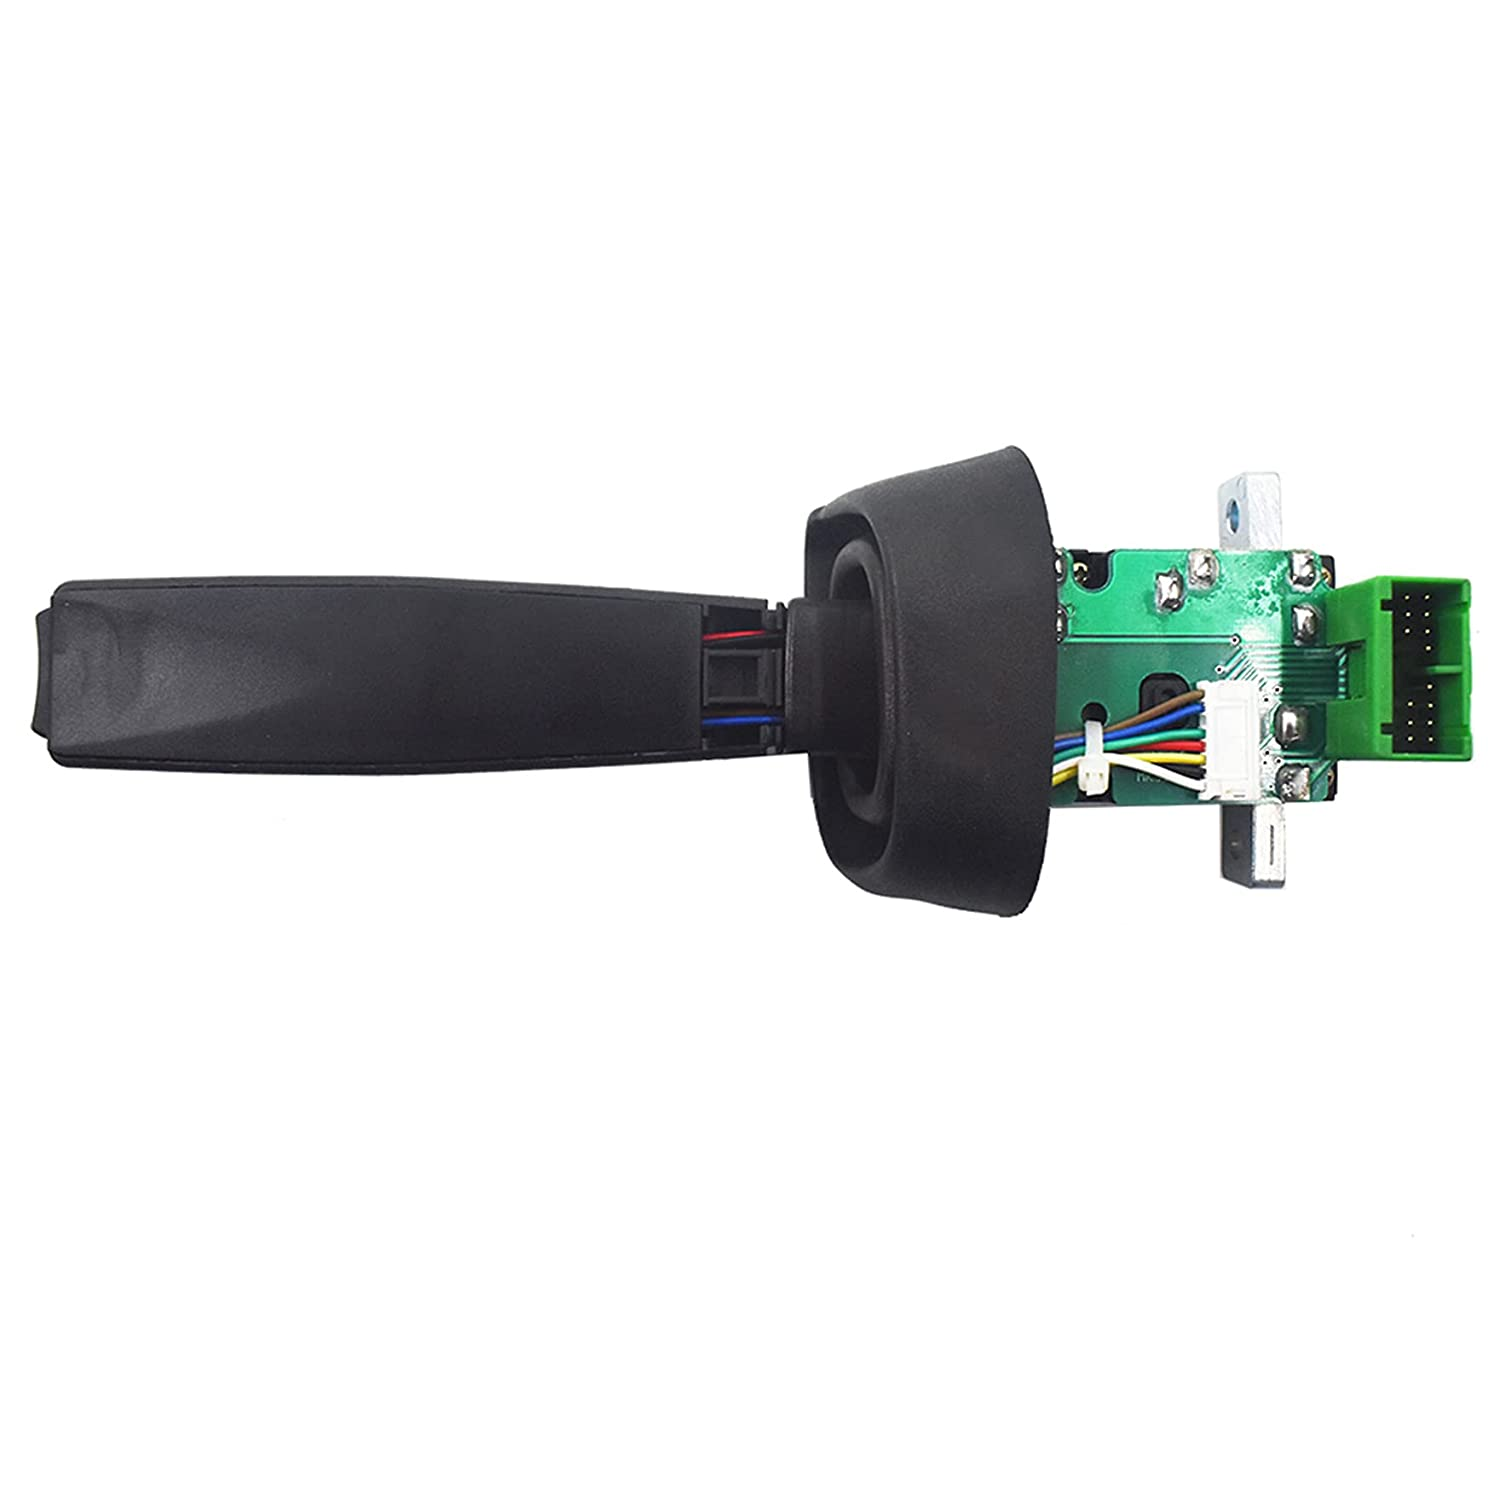 waltyotur 978-5501 20399170 Turn Signal Replacement Max 61% OFF for 2 Houston Mall Switch